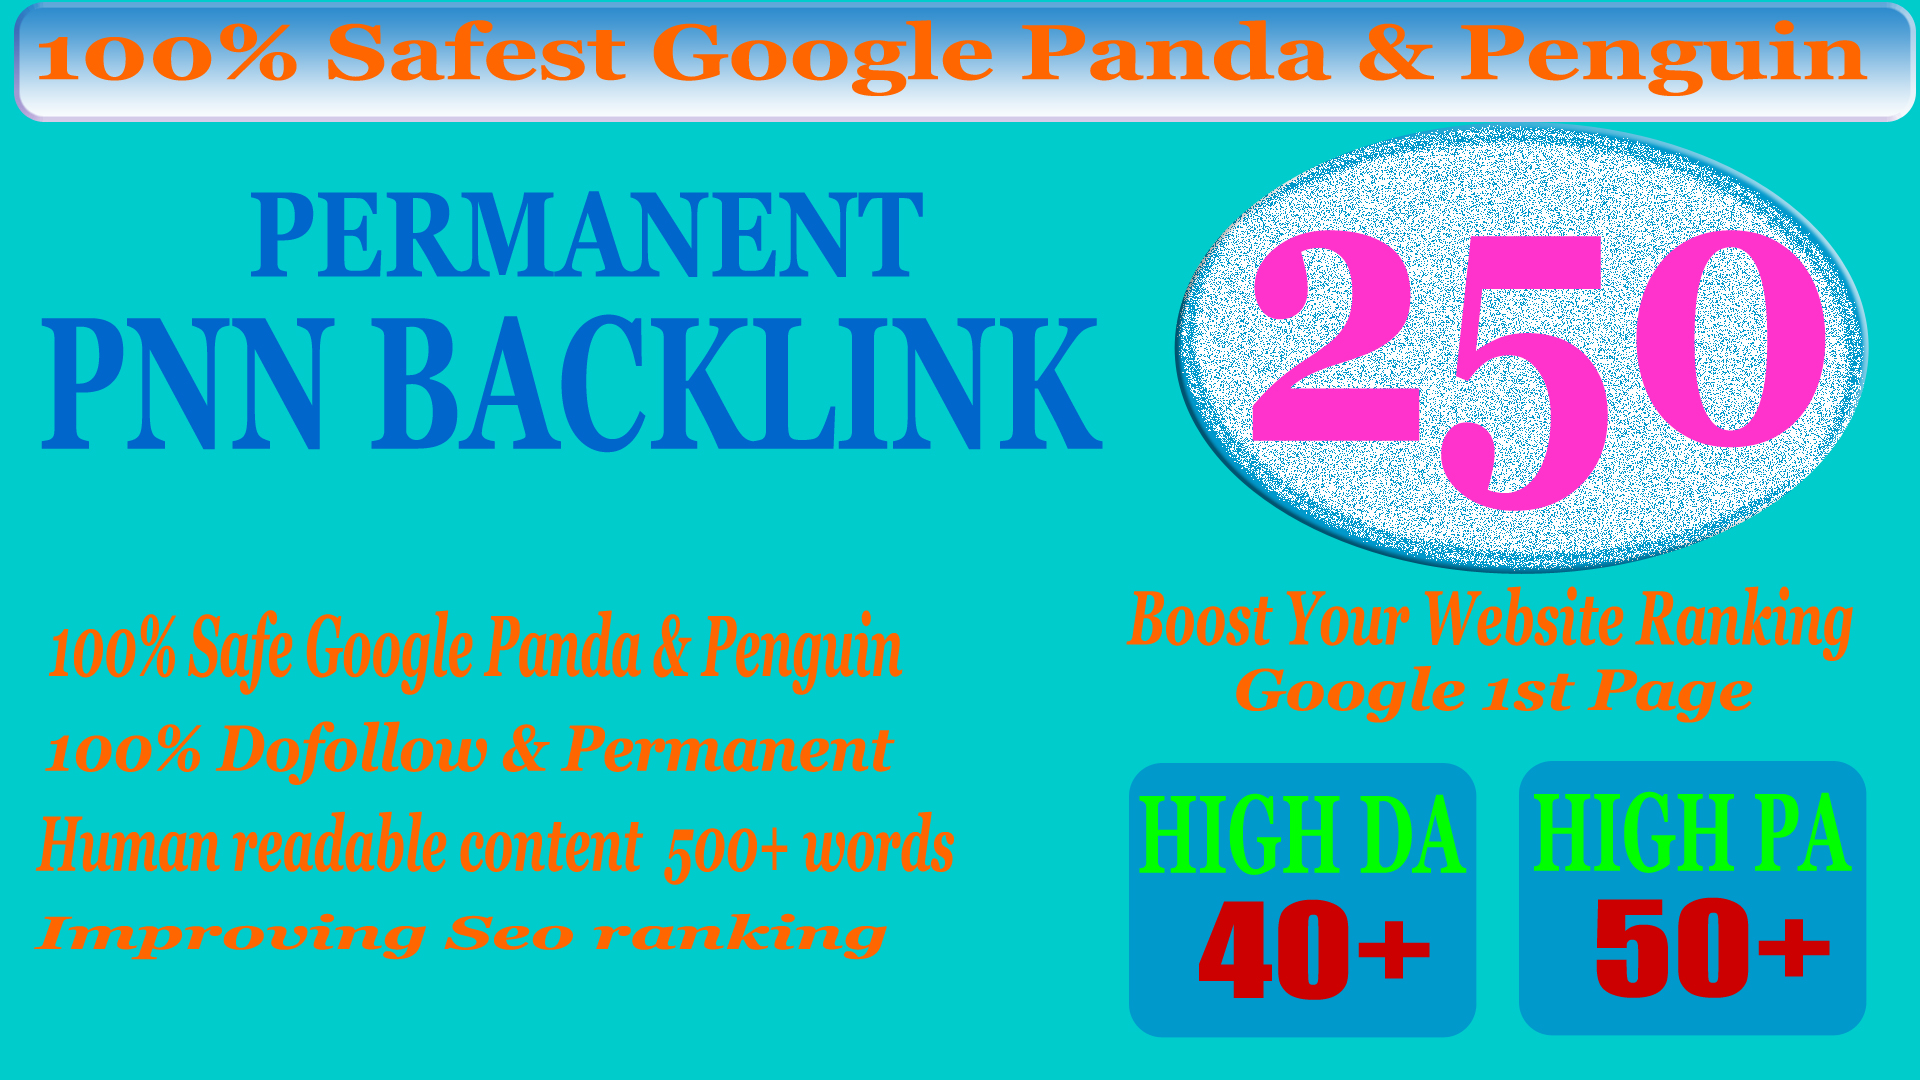 Get Extreme 250+ PBN Backlink in your website hompage with HIGH DA/PA/TF/CF with unique website